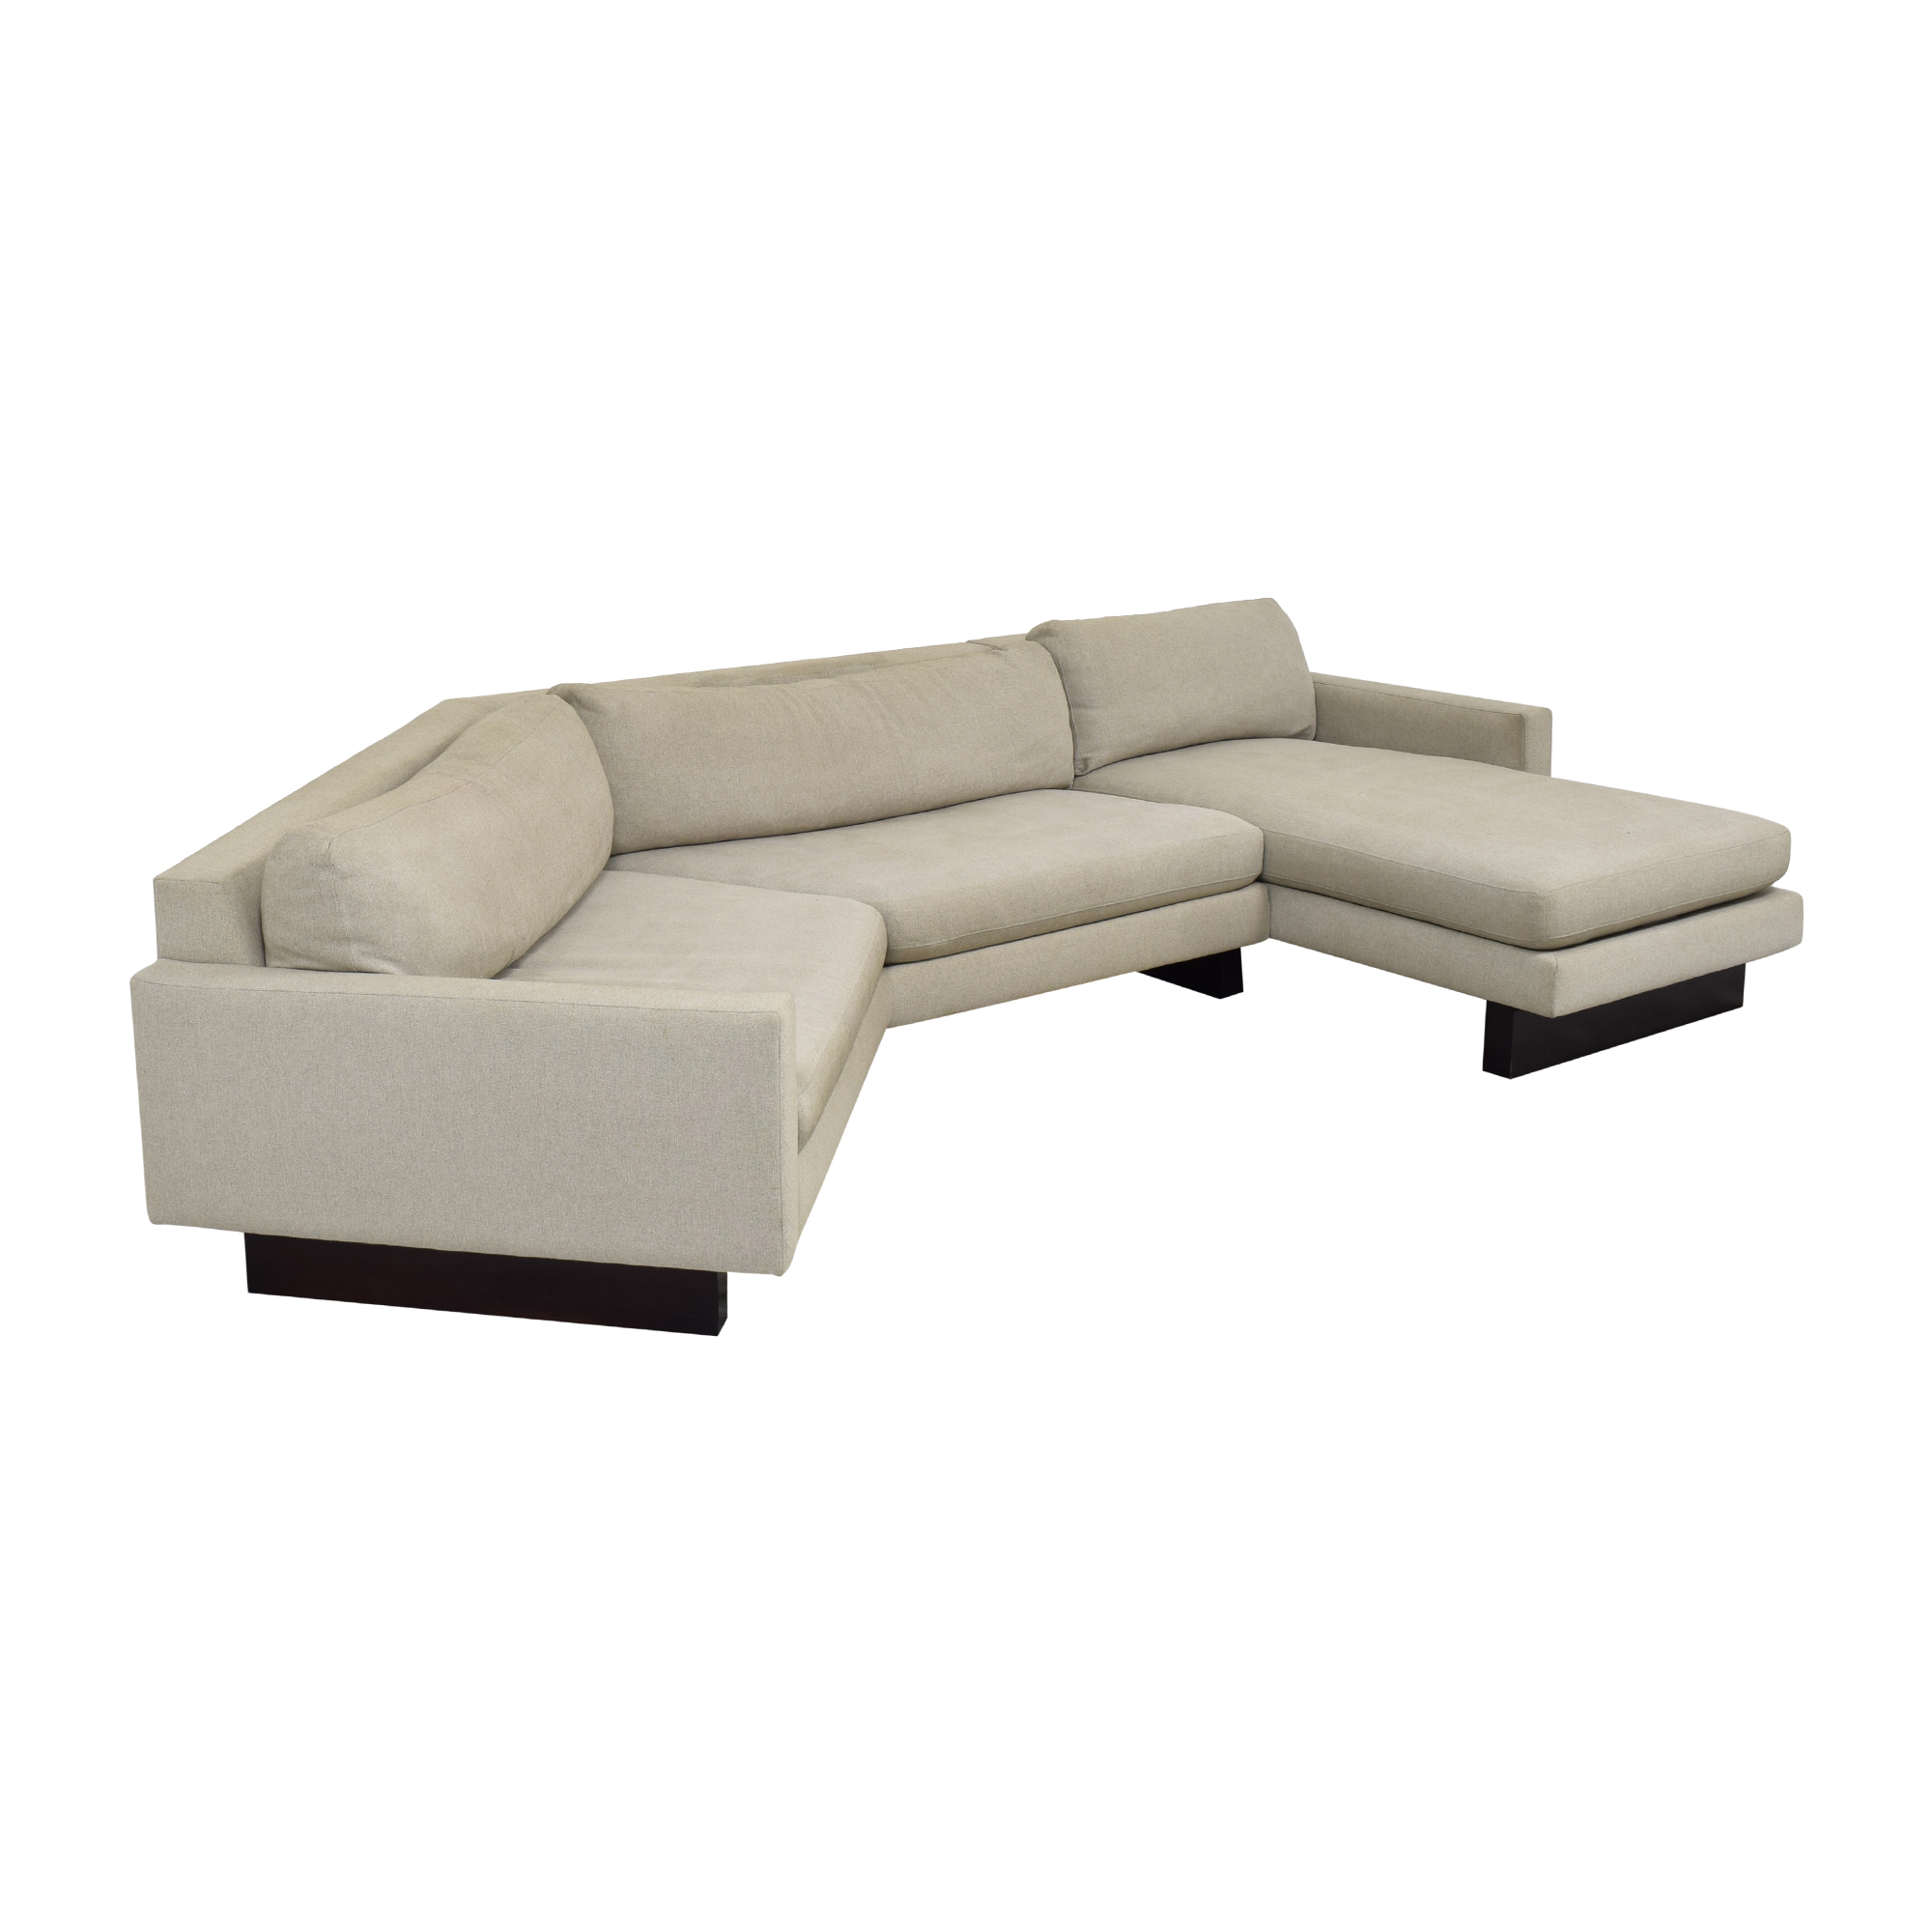 shop Room & Board Hess Angled Sectional with Chaise Room & Board Sofas